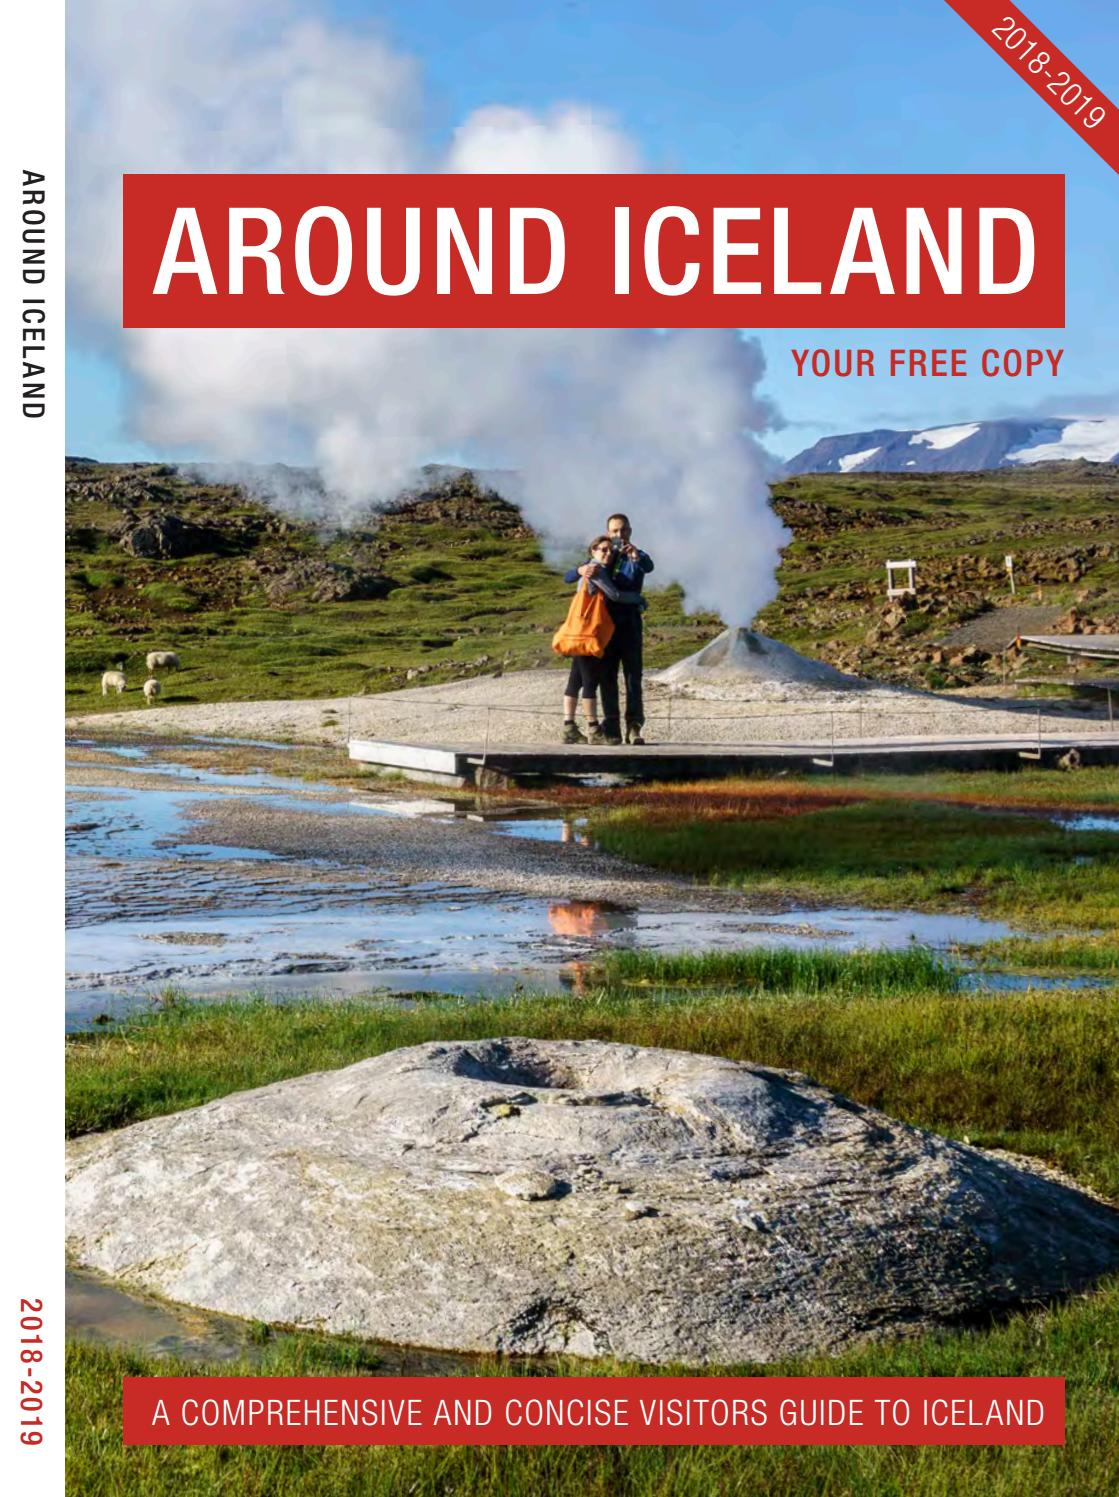 Around Iceland 2018-2019 by MD Reykjavik - issuu